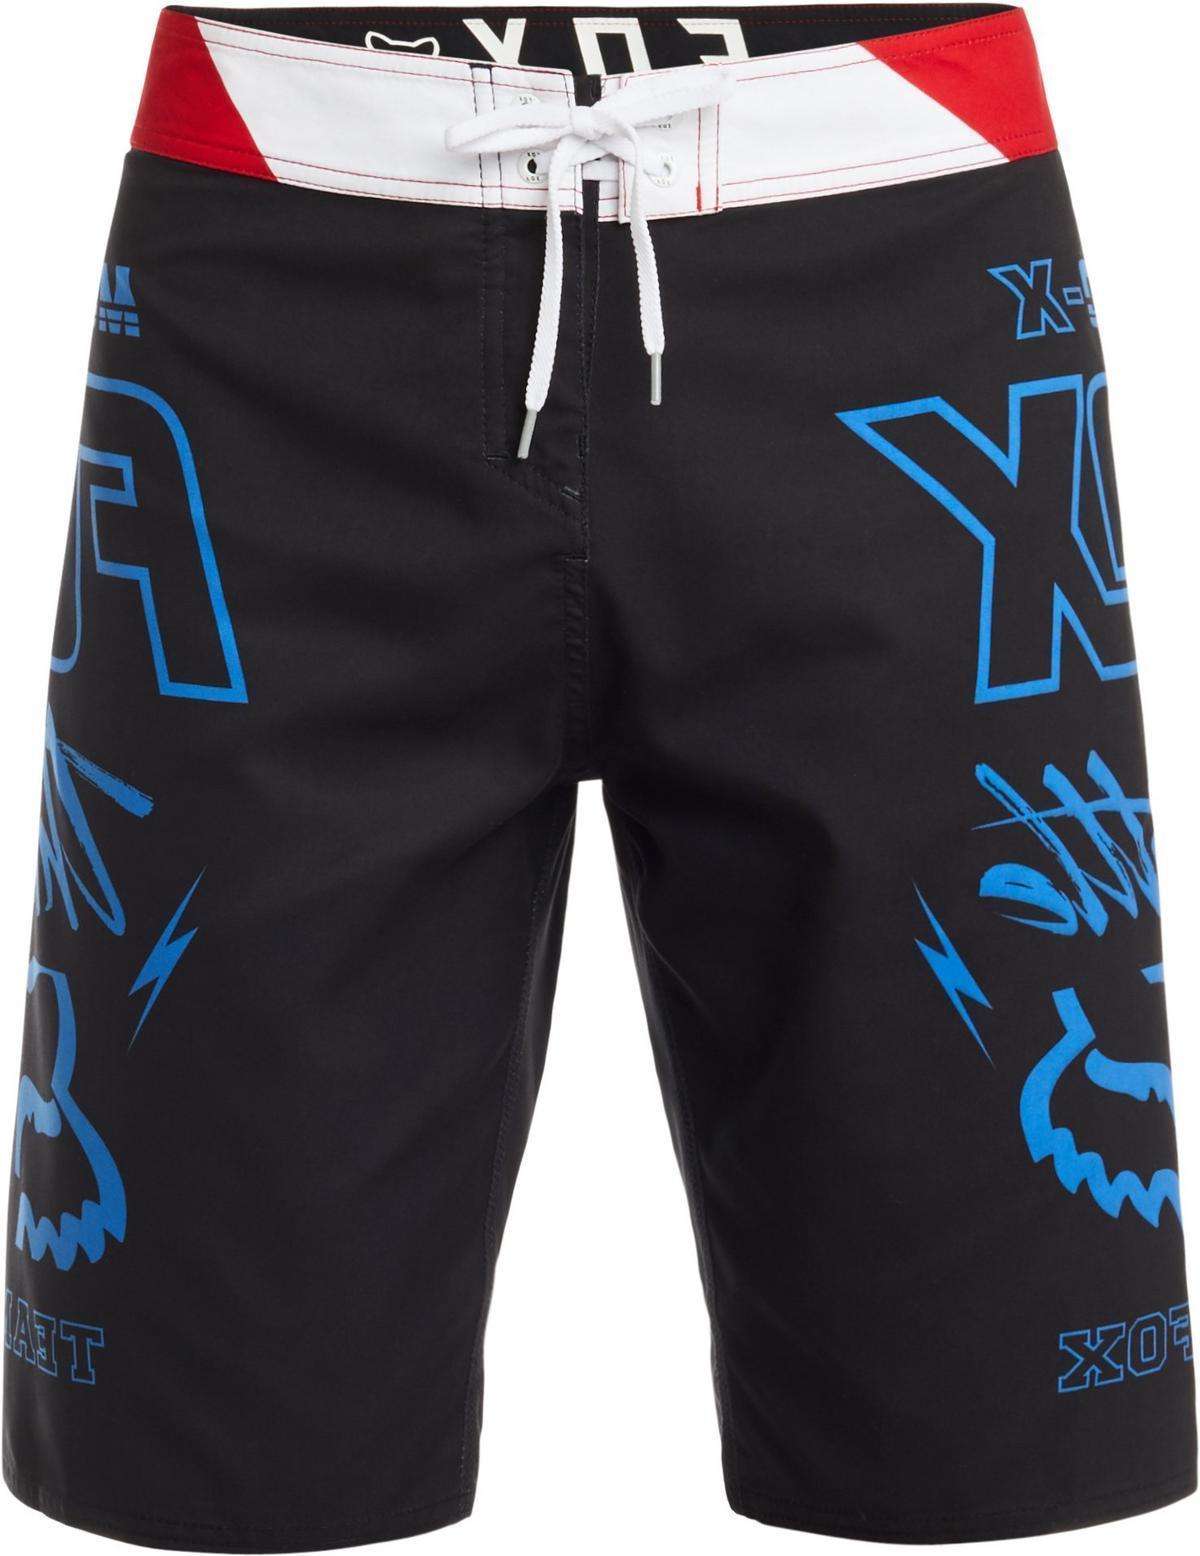 Fox Racing Boardshort Men's Throttle Board Short Trunk Black